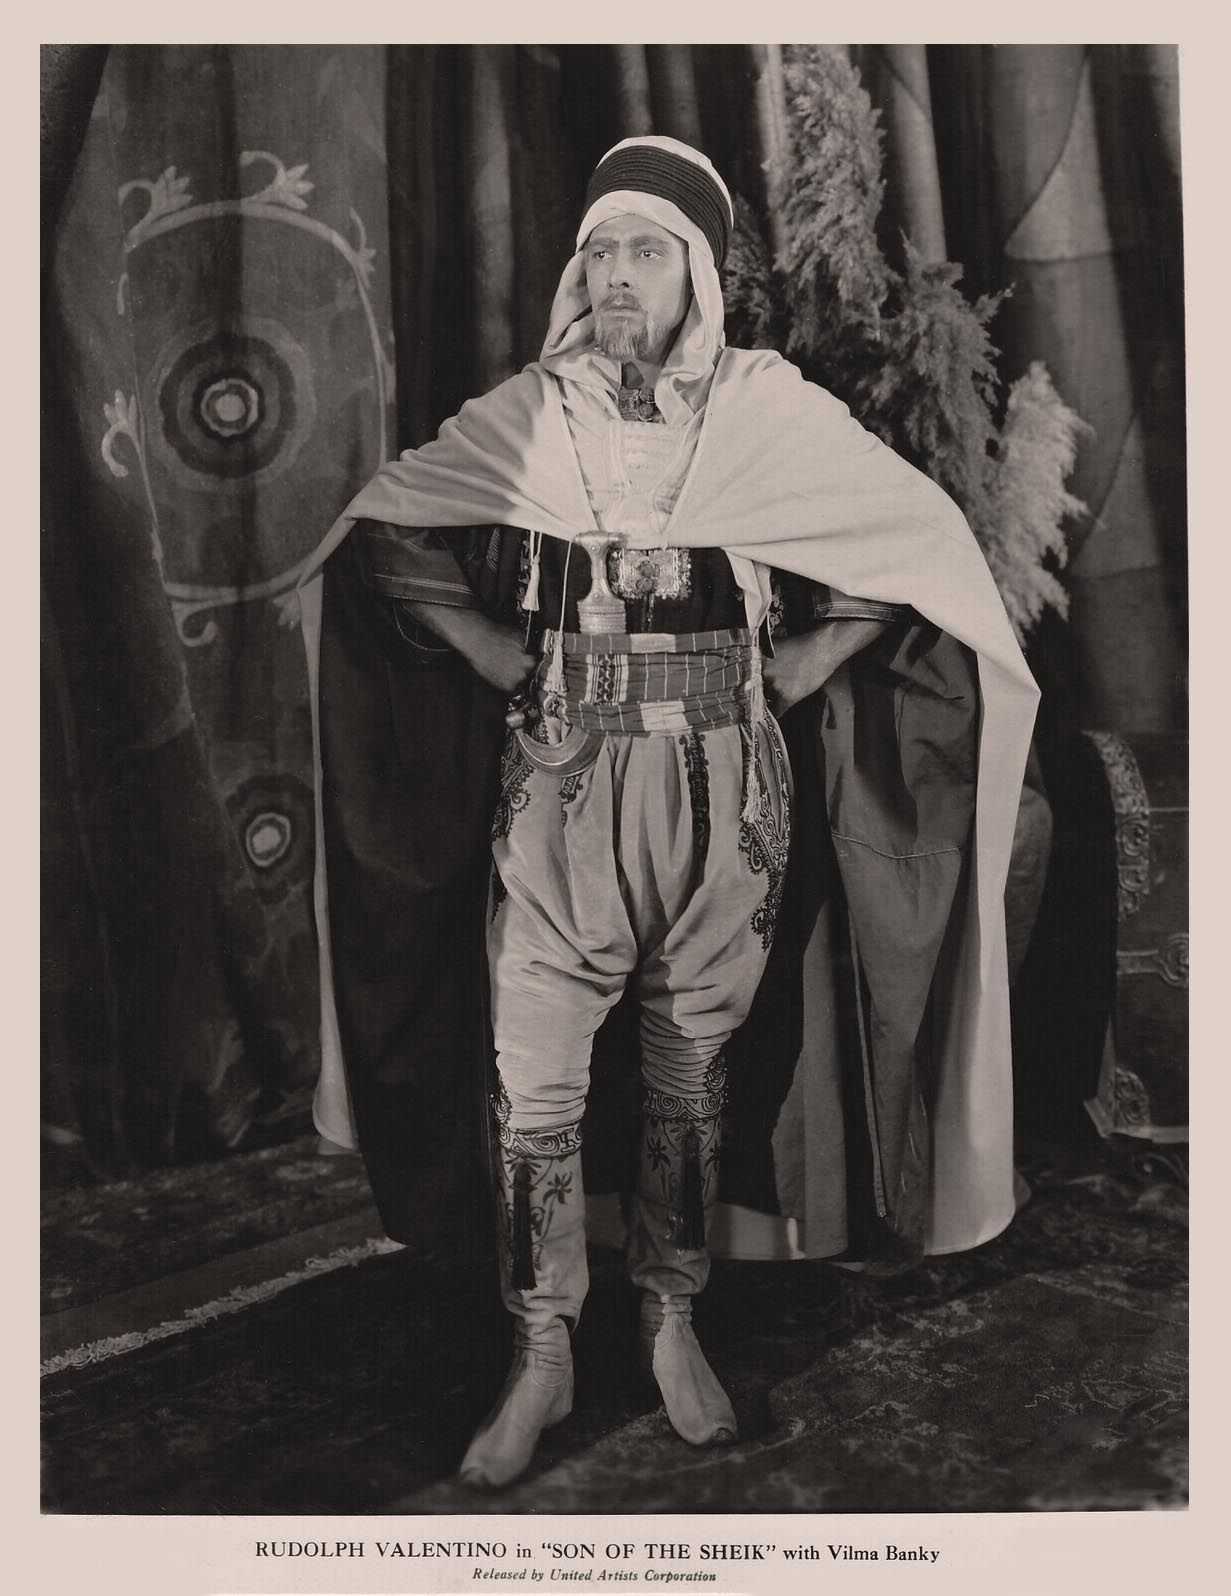 Rudolph Valentino - The Son of the Sheik (1926)